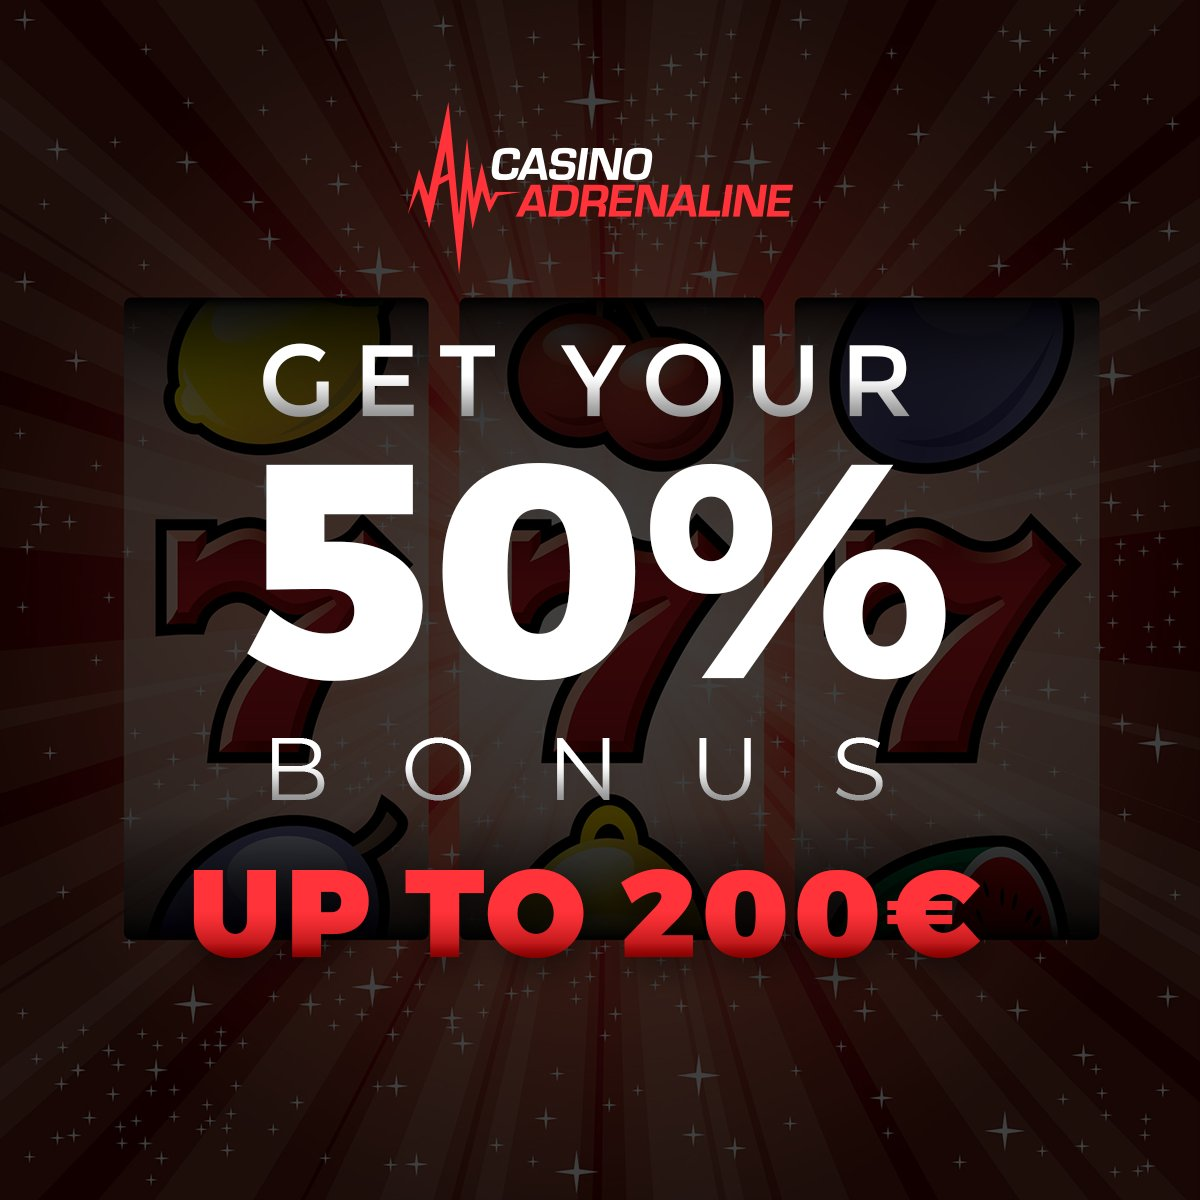 test Twitter Media - This Friday get your 50% bonus up to 200 EUR. Get your 50x bonus and deposit today! 👍😎 #CasinoAdrenaline #CasinoAdrenalingaming #casinos #slot #casinoluck #enjoythegame https://t.co/YBFjsxkCfV